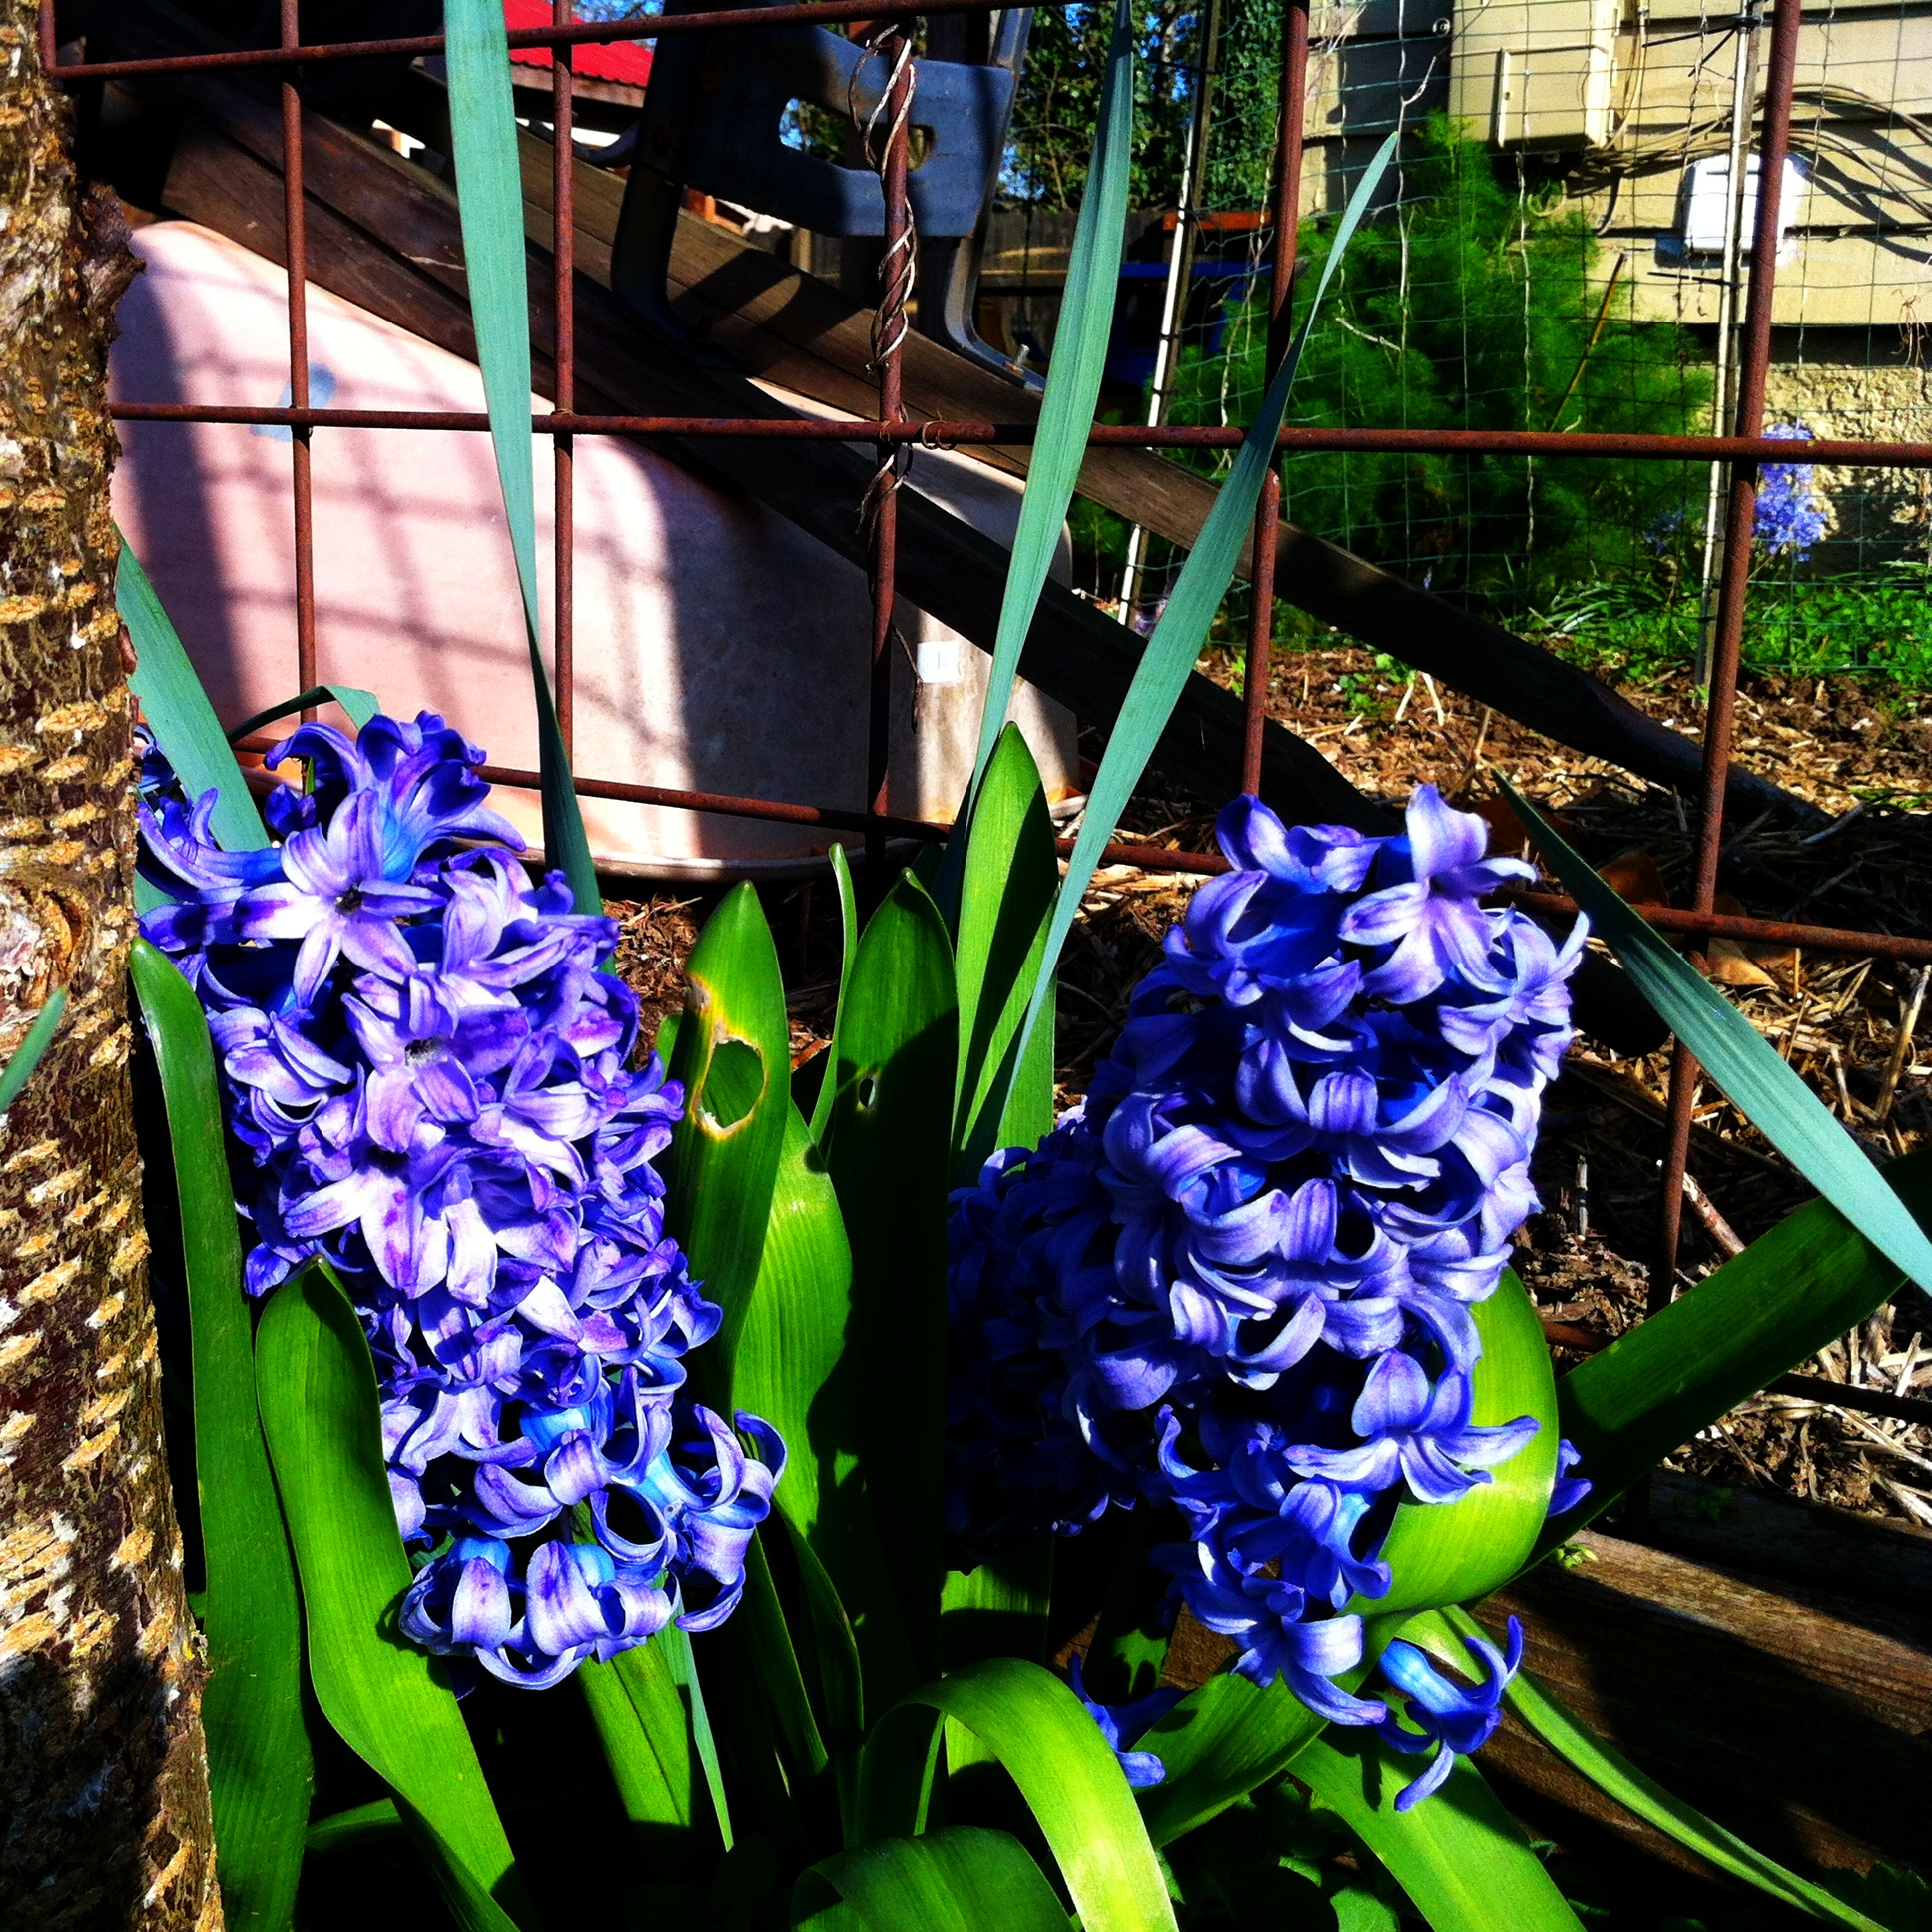 4a16b602c Native to the mediterranean area near modern day Turkey and the Middle  East, today's beautiful Hyacinth flowers get their name from a beautiful,  ...